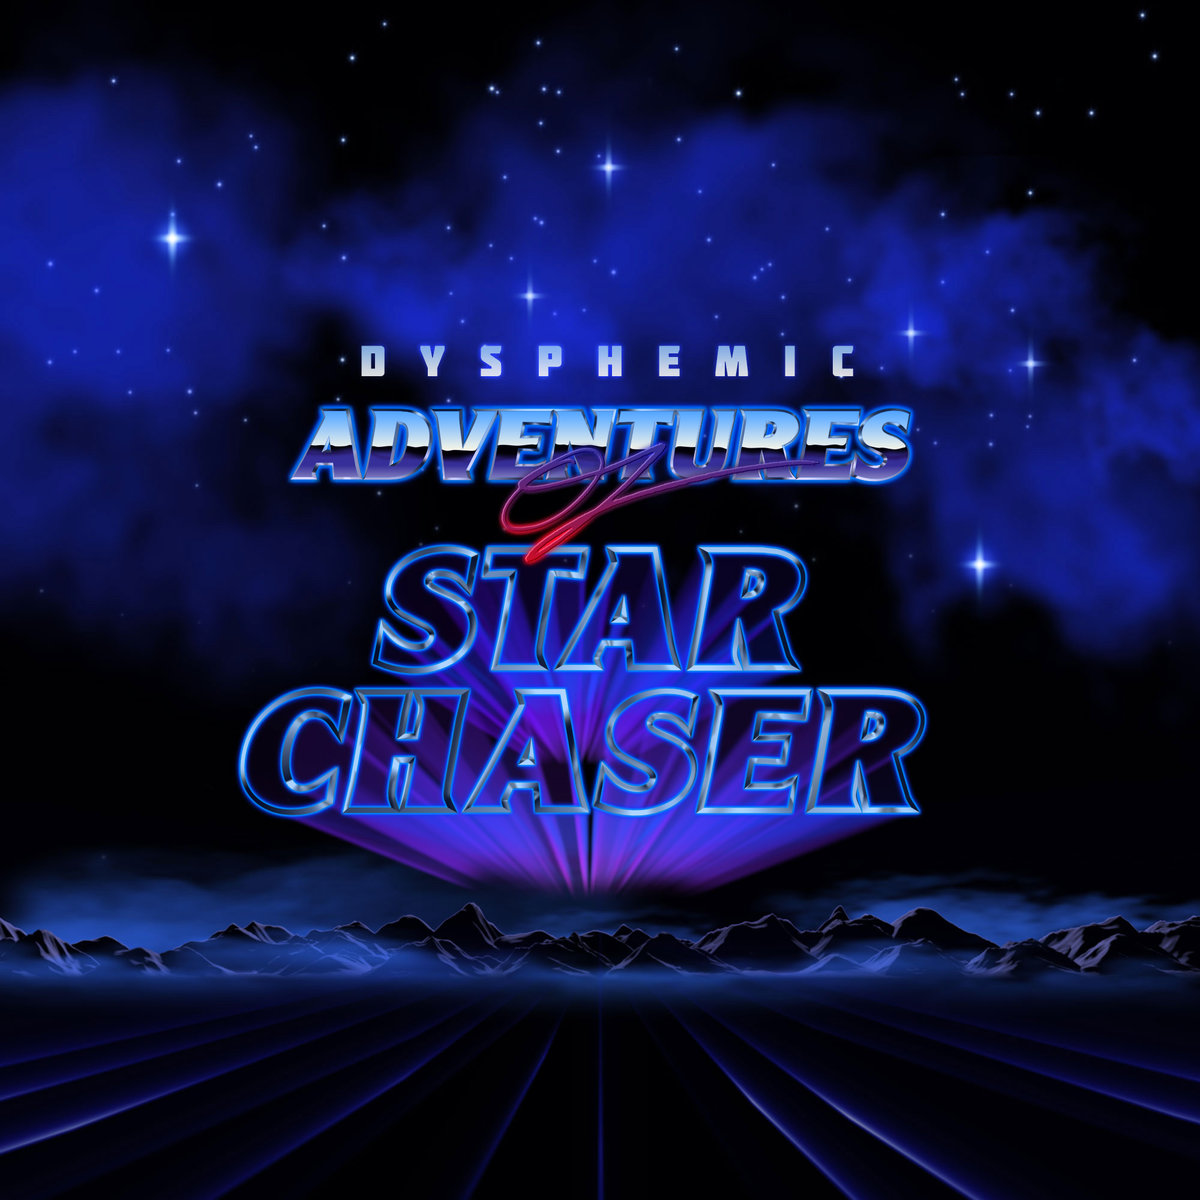 Dysphemic - Moon Cave Party (Warp9 Remix) @ 'Adventures of Star Chaser' album (Austin)